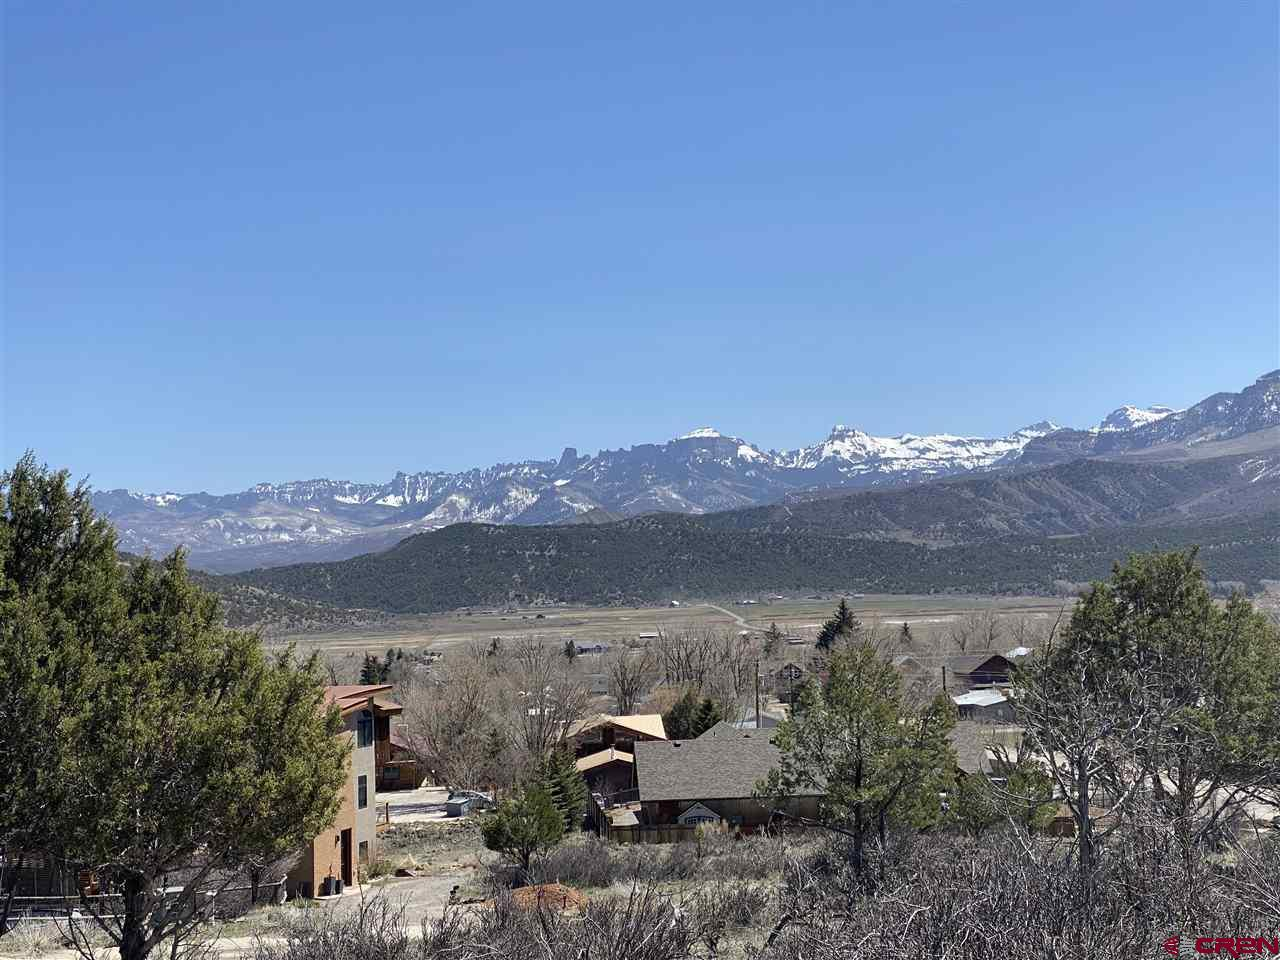 Beautiful oversized Town lot! This piece of property looks over the Town of Ridgway, with un-obstructed and sweeping views of the Cimarron Mountain Range and Uncompaghre Valley. This property offers tons of privacy from neighbors with it measuring 14,288 sq. ft., compared to most Town of Ridgway lots of 7,100 sq. ft.  The subdivision has paved roads, curb, gutters, and sidewalks already in place. Partial water and sewer taps paid.  Enjoy being within walking distance to Downtown Ridgway and Ridgway Elementary School. Come take a look and build the house of your dreams!